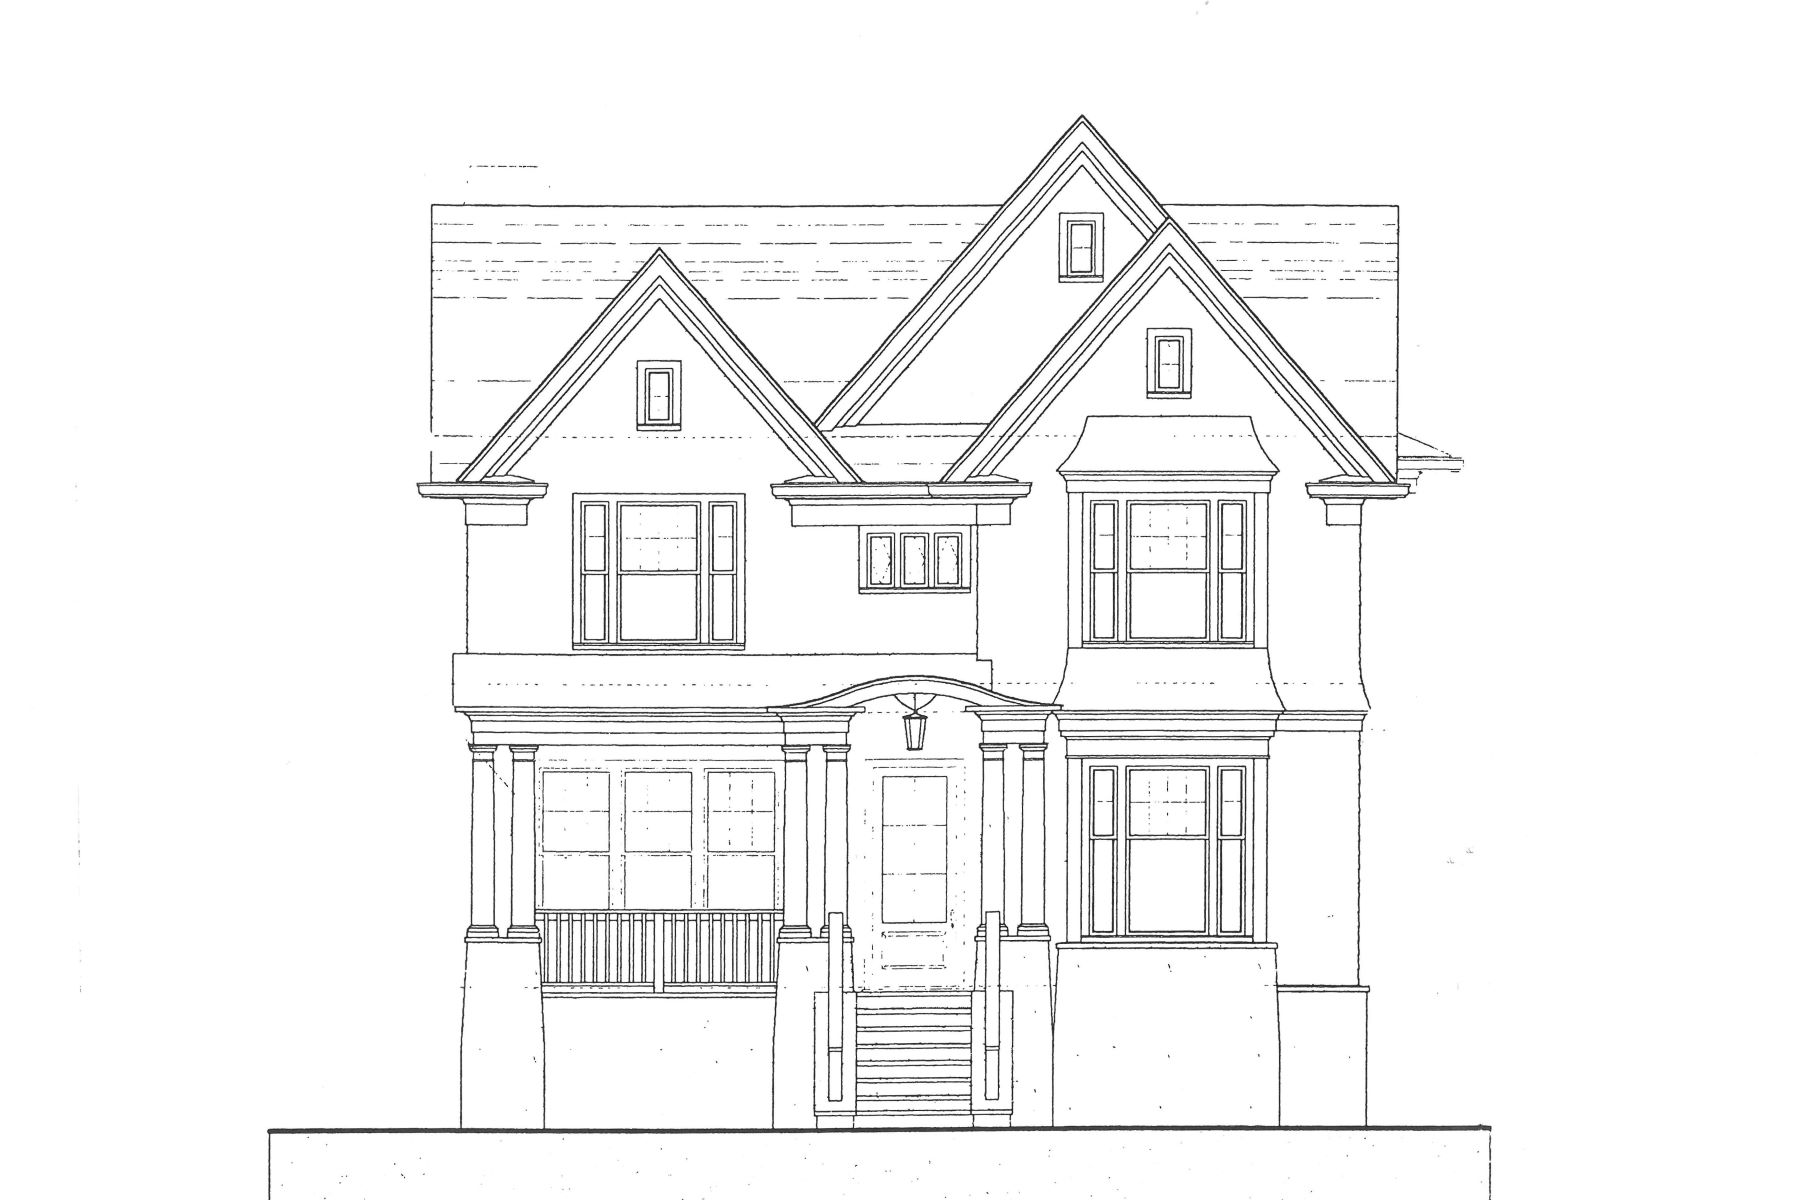 Single Family Home for Sale at New Construction in Buckhead 2877 N Fulton Drive NE Garden Hills, Atlanta, Georgia, 30305 United States